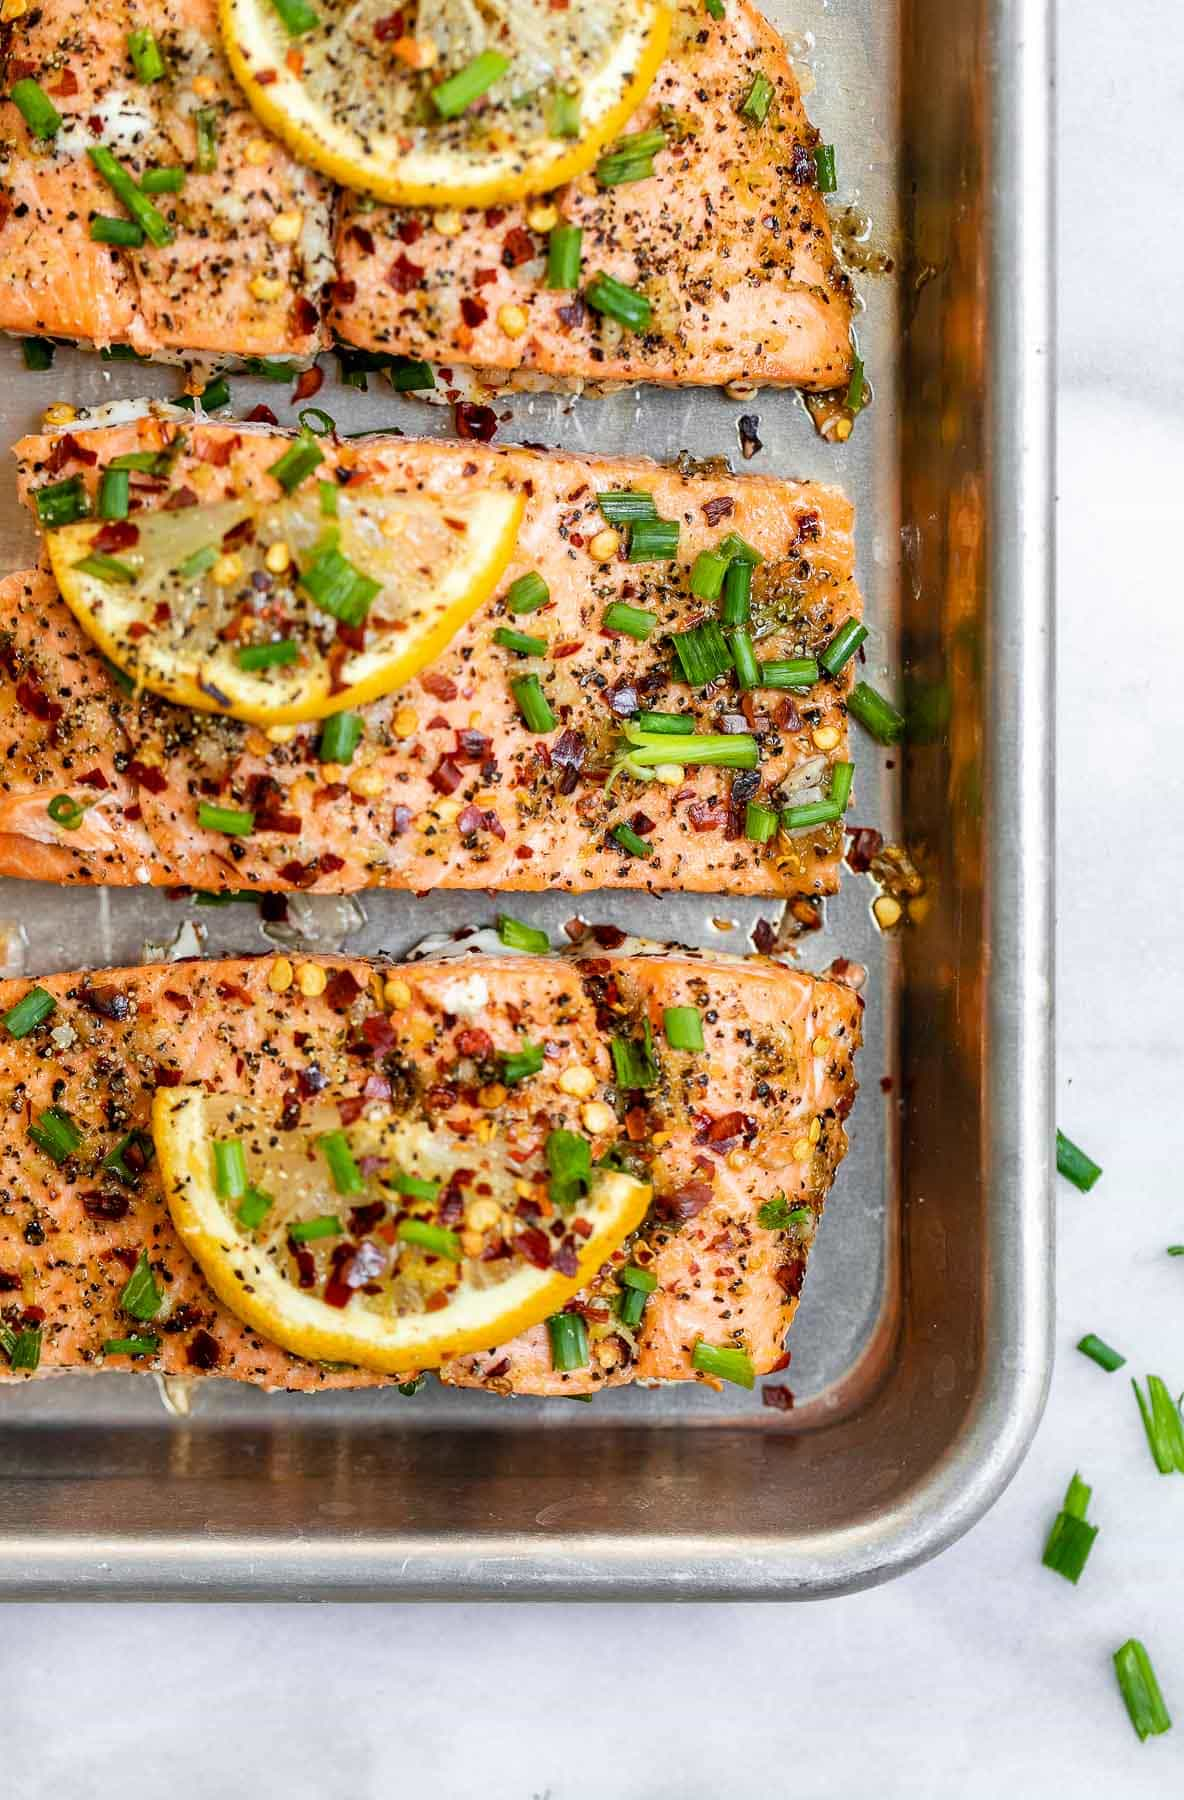 Final baked salmon on a baking sheet with lemon wedges on top.